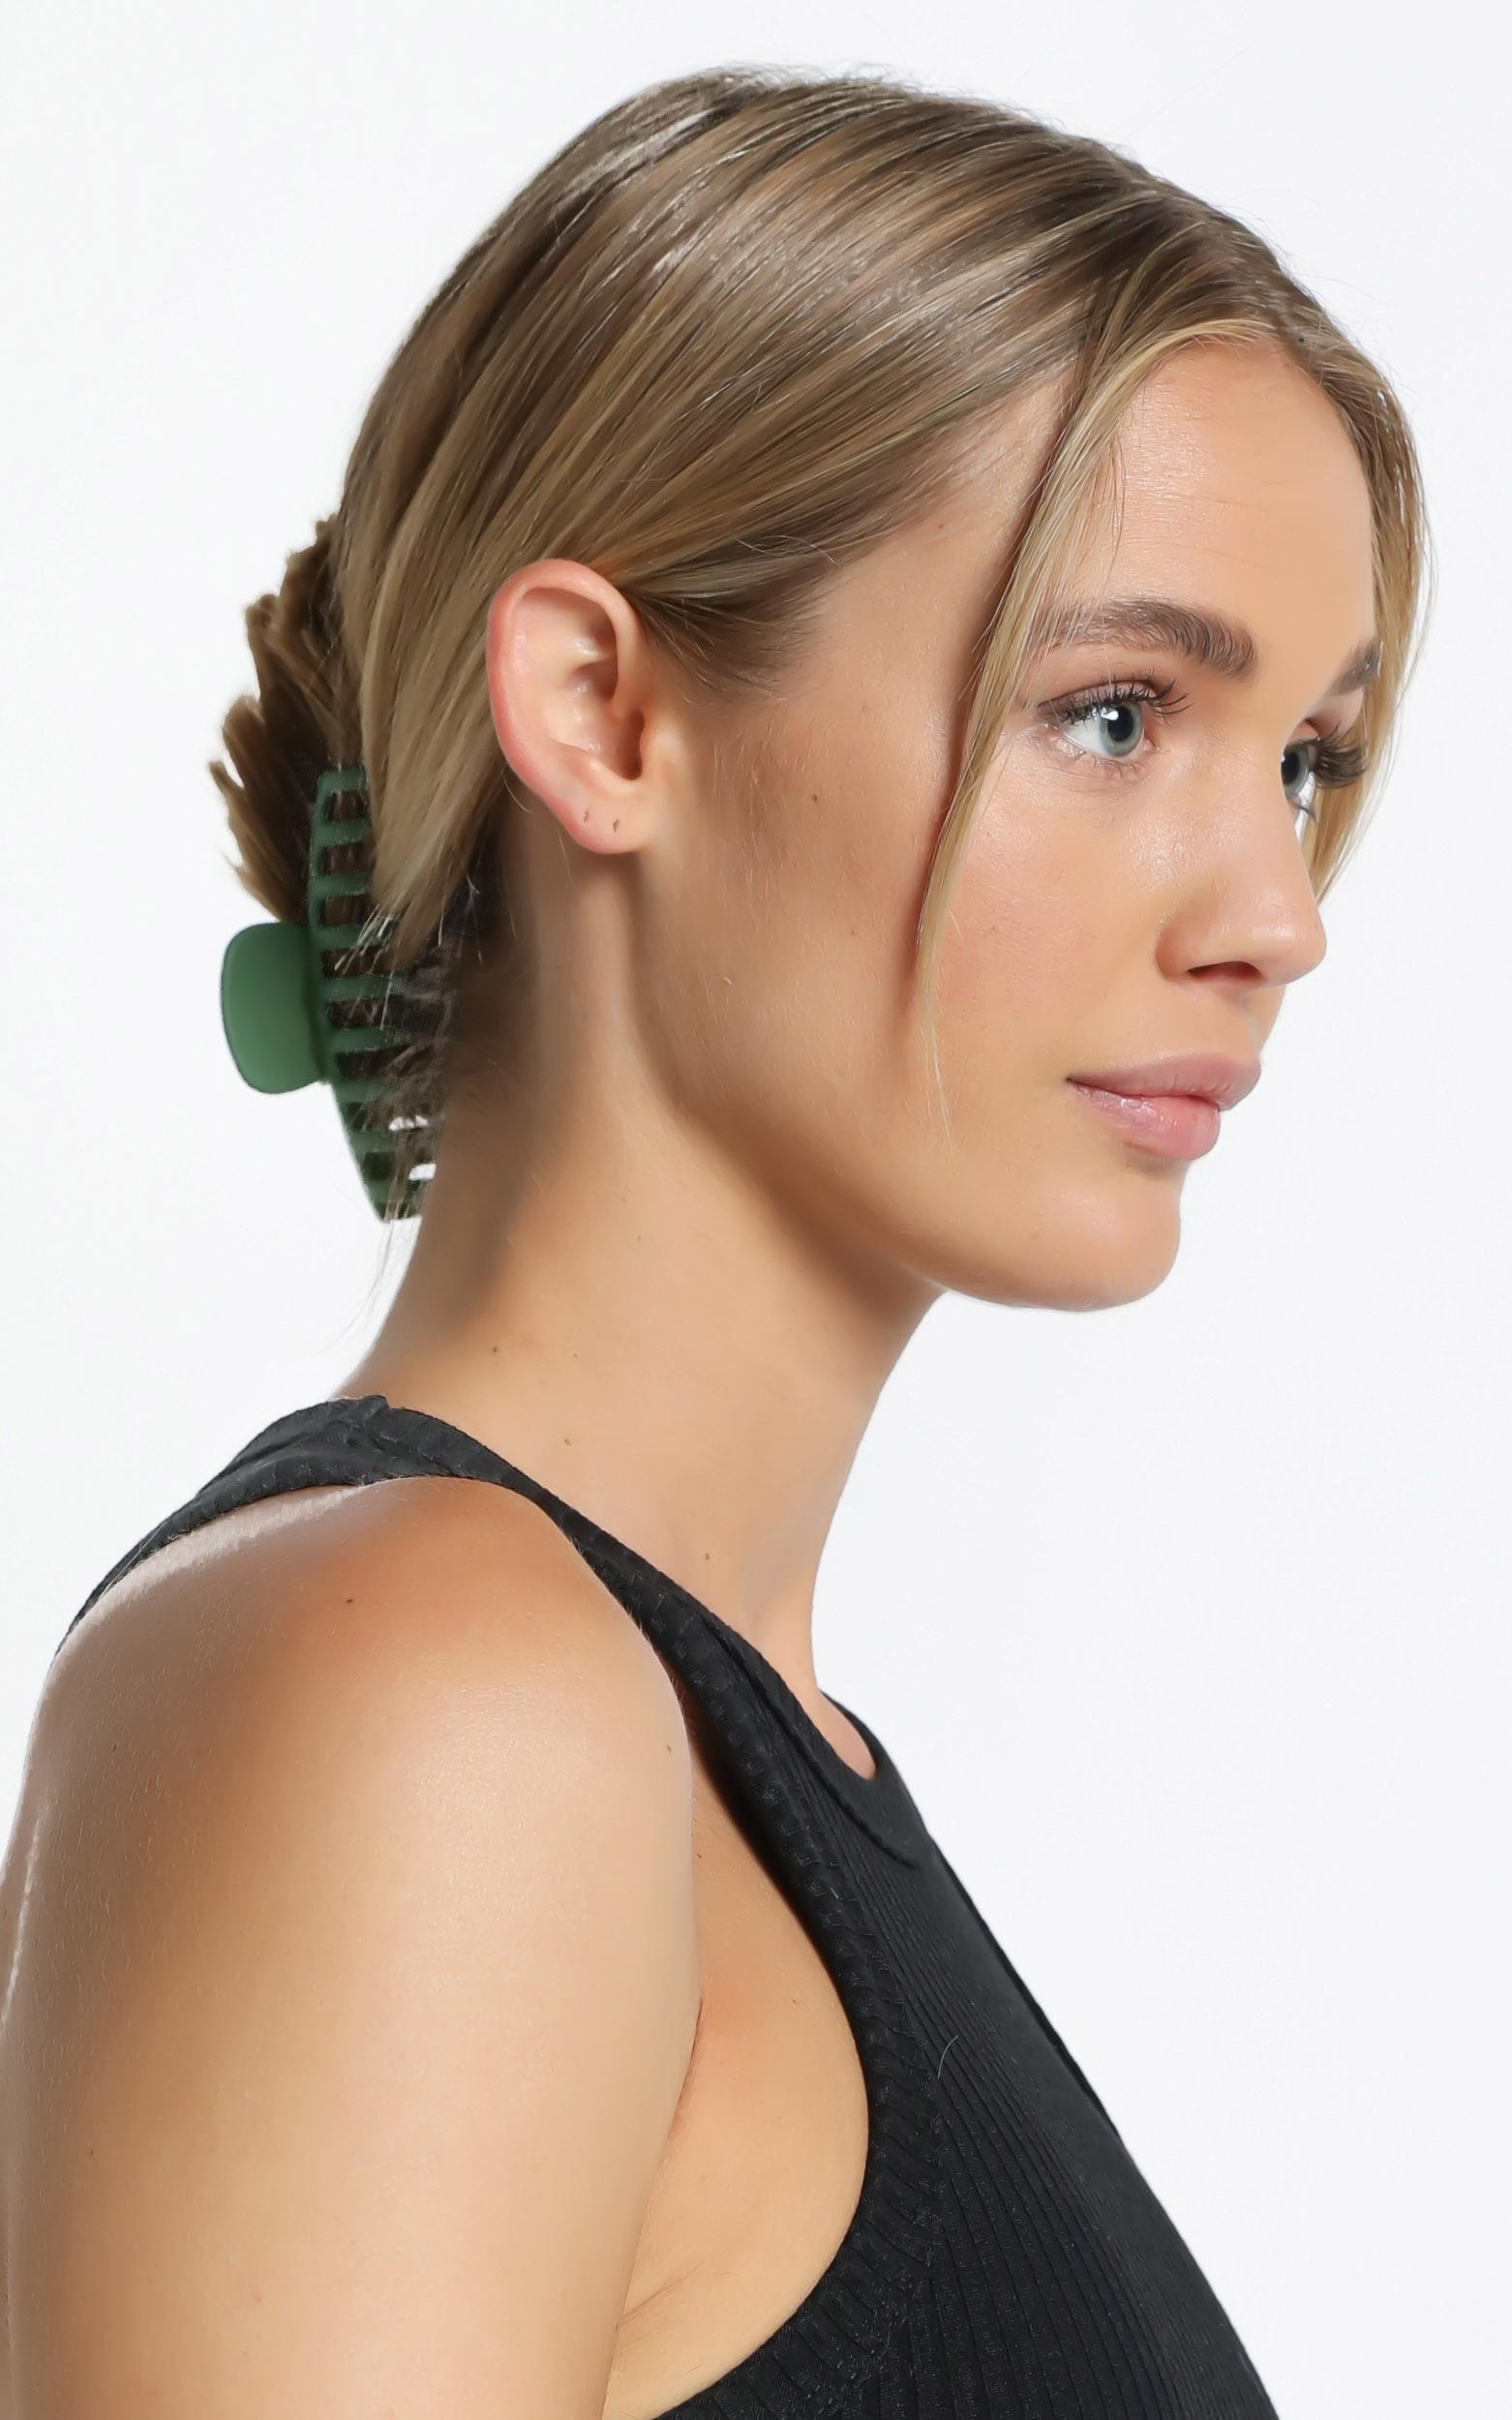 Bring It Back Hair Clip in Green, , hi-res image number null